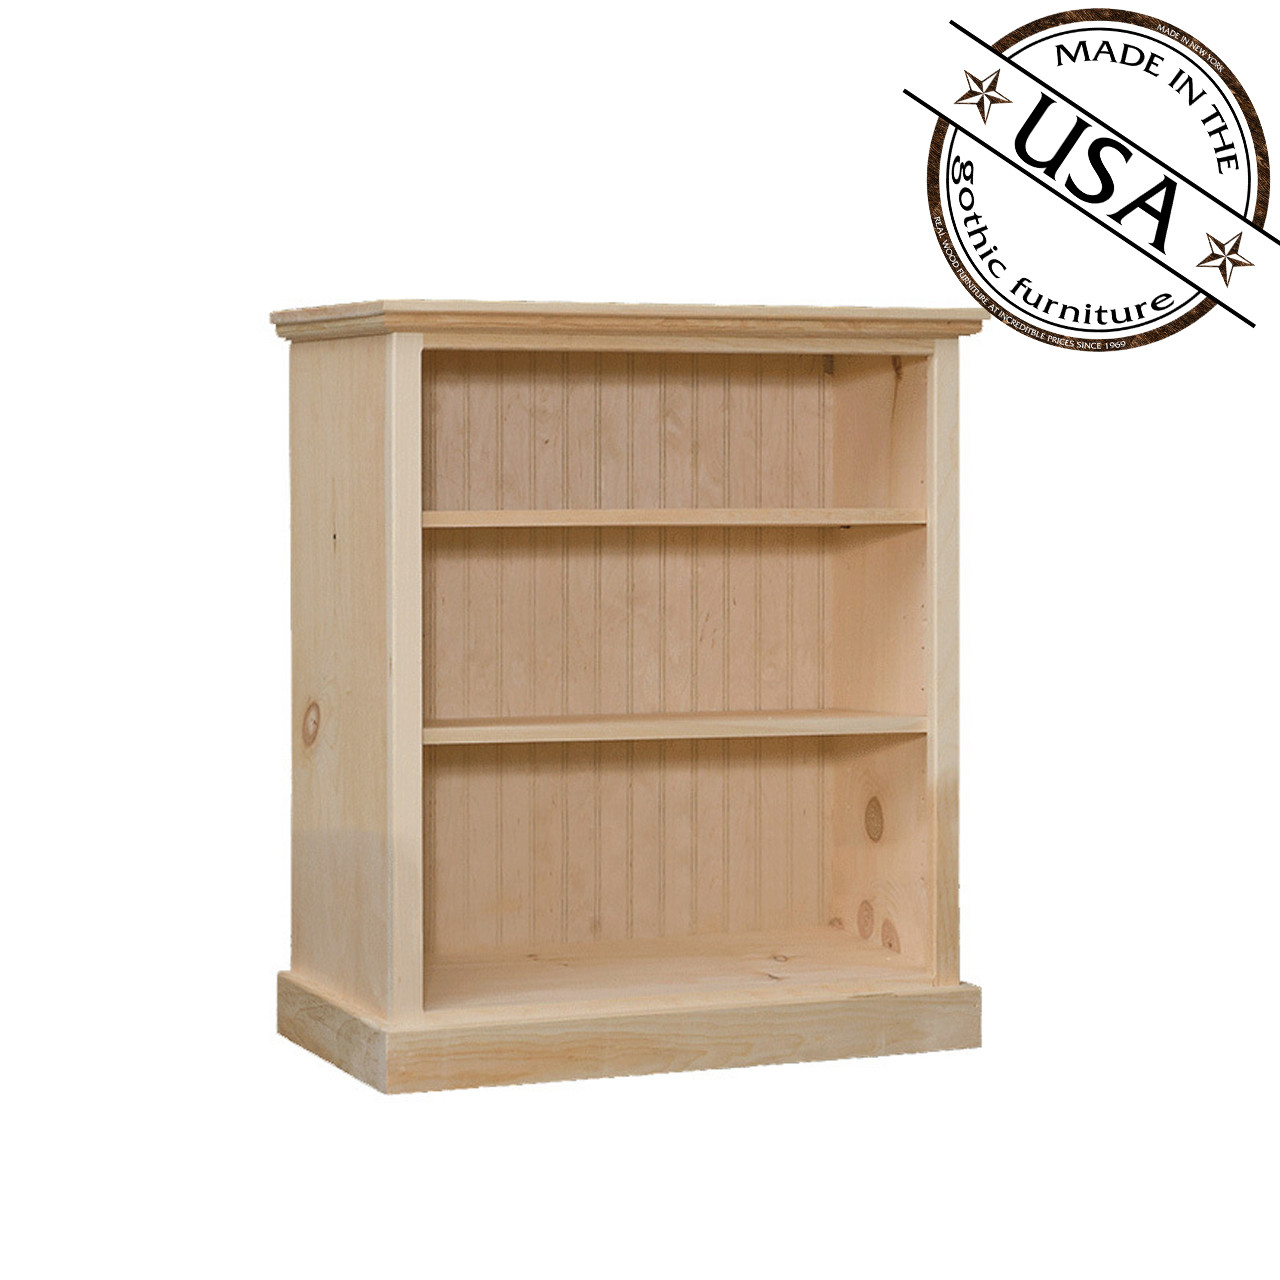 shade amazon wide mango cm furniture a storage homescapes dp wood with x kitchen walnut bookcase mangat shelf uk co home bookcases